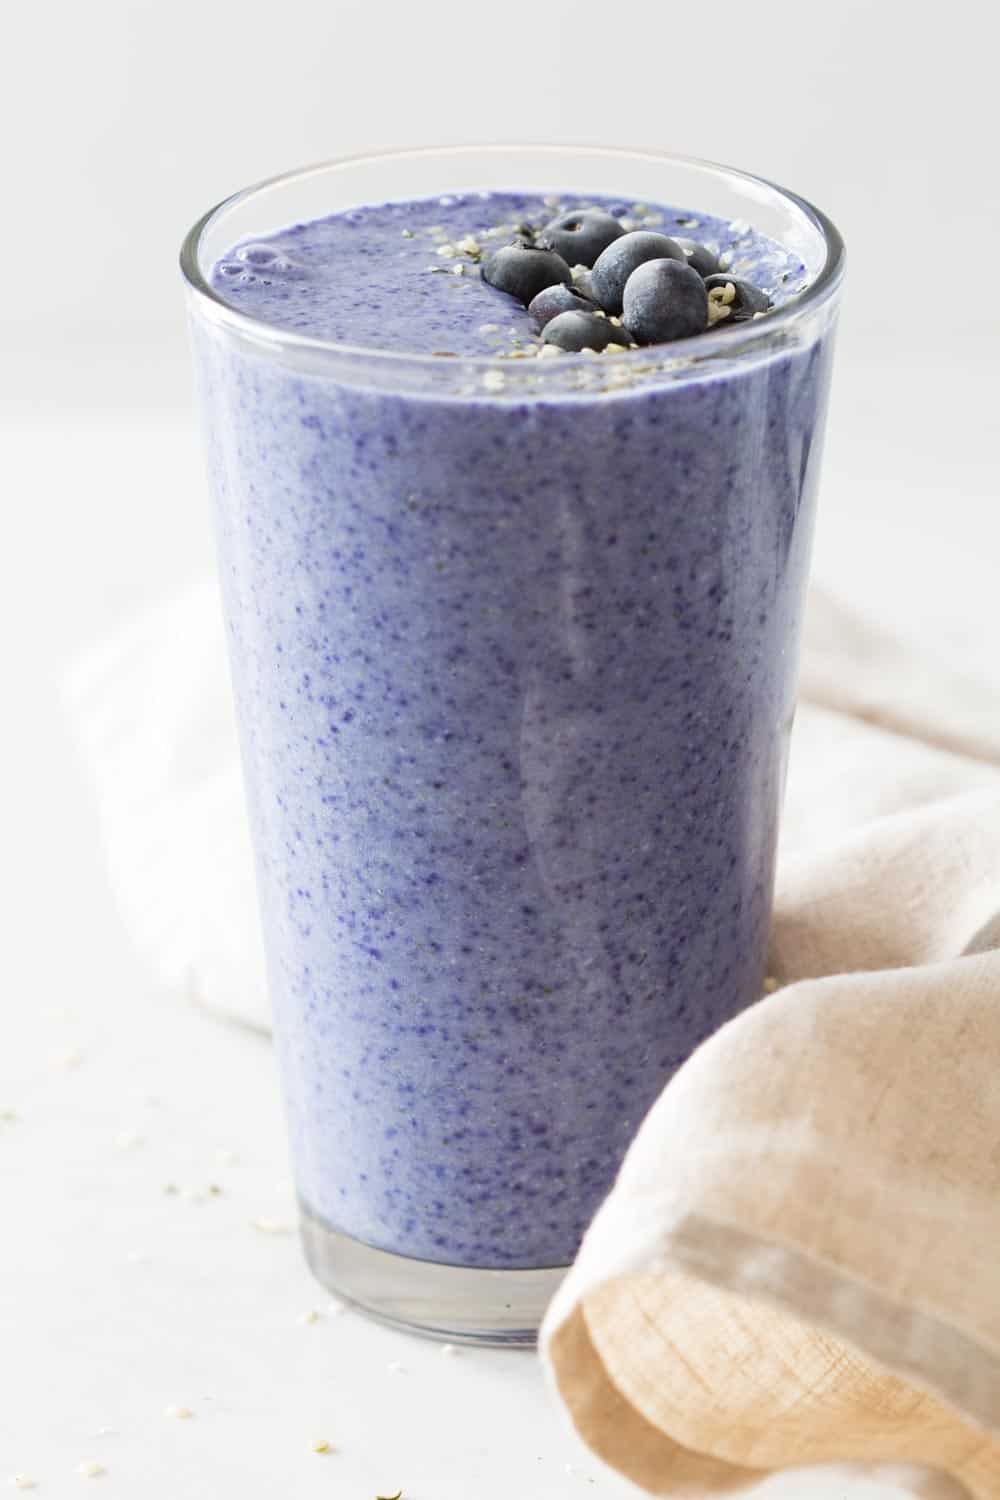 Butterfly Pea Tea Poweder Smoothie made frozen bananas, almond milk, hemp seeds. Almost purple smoothie.